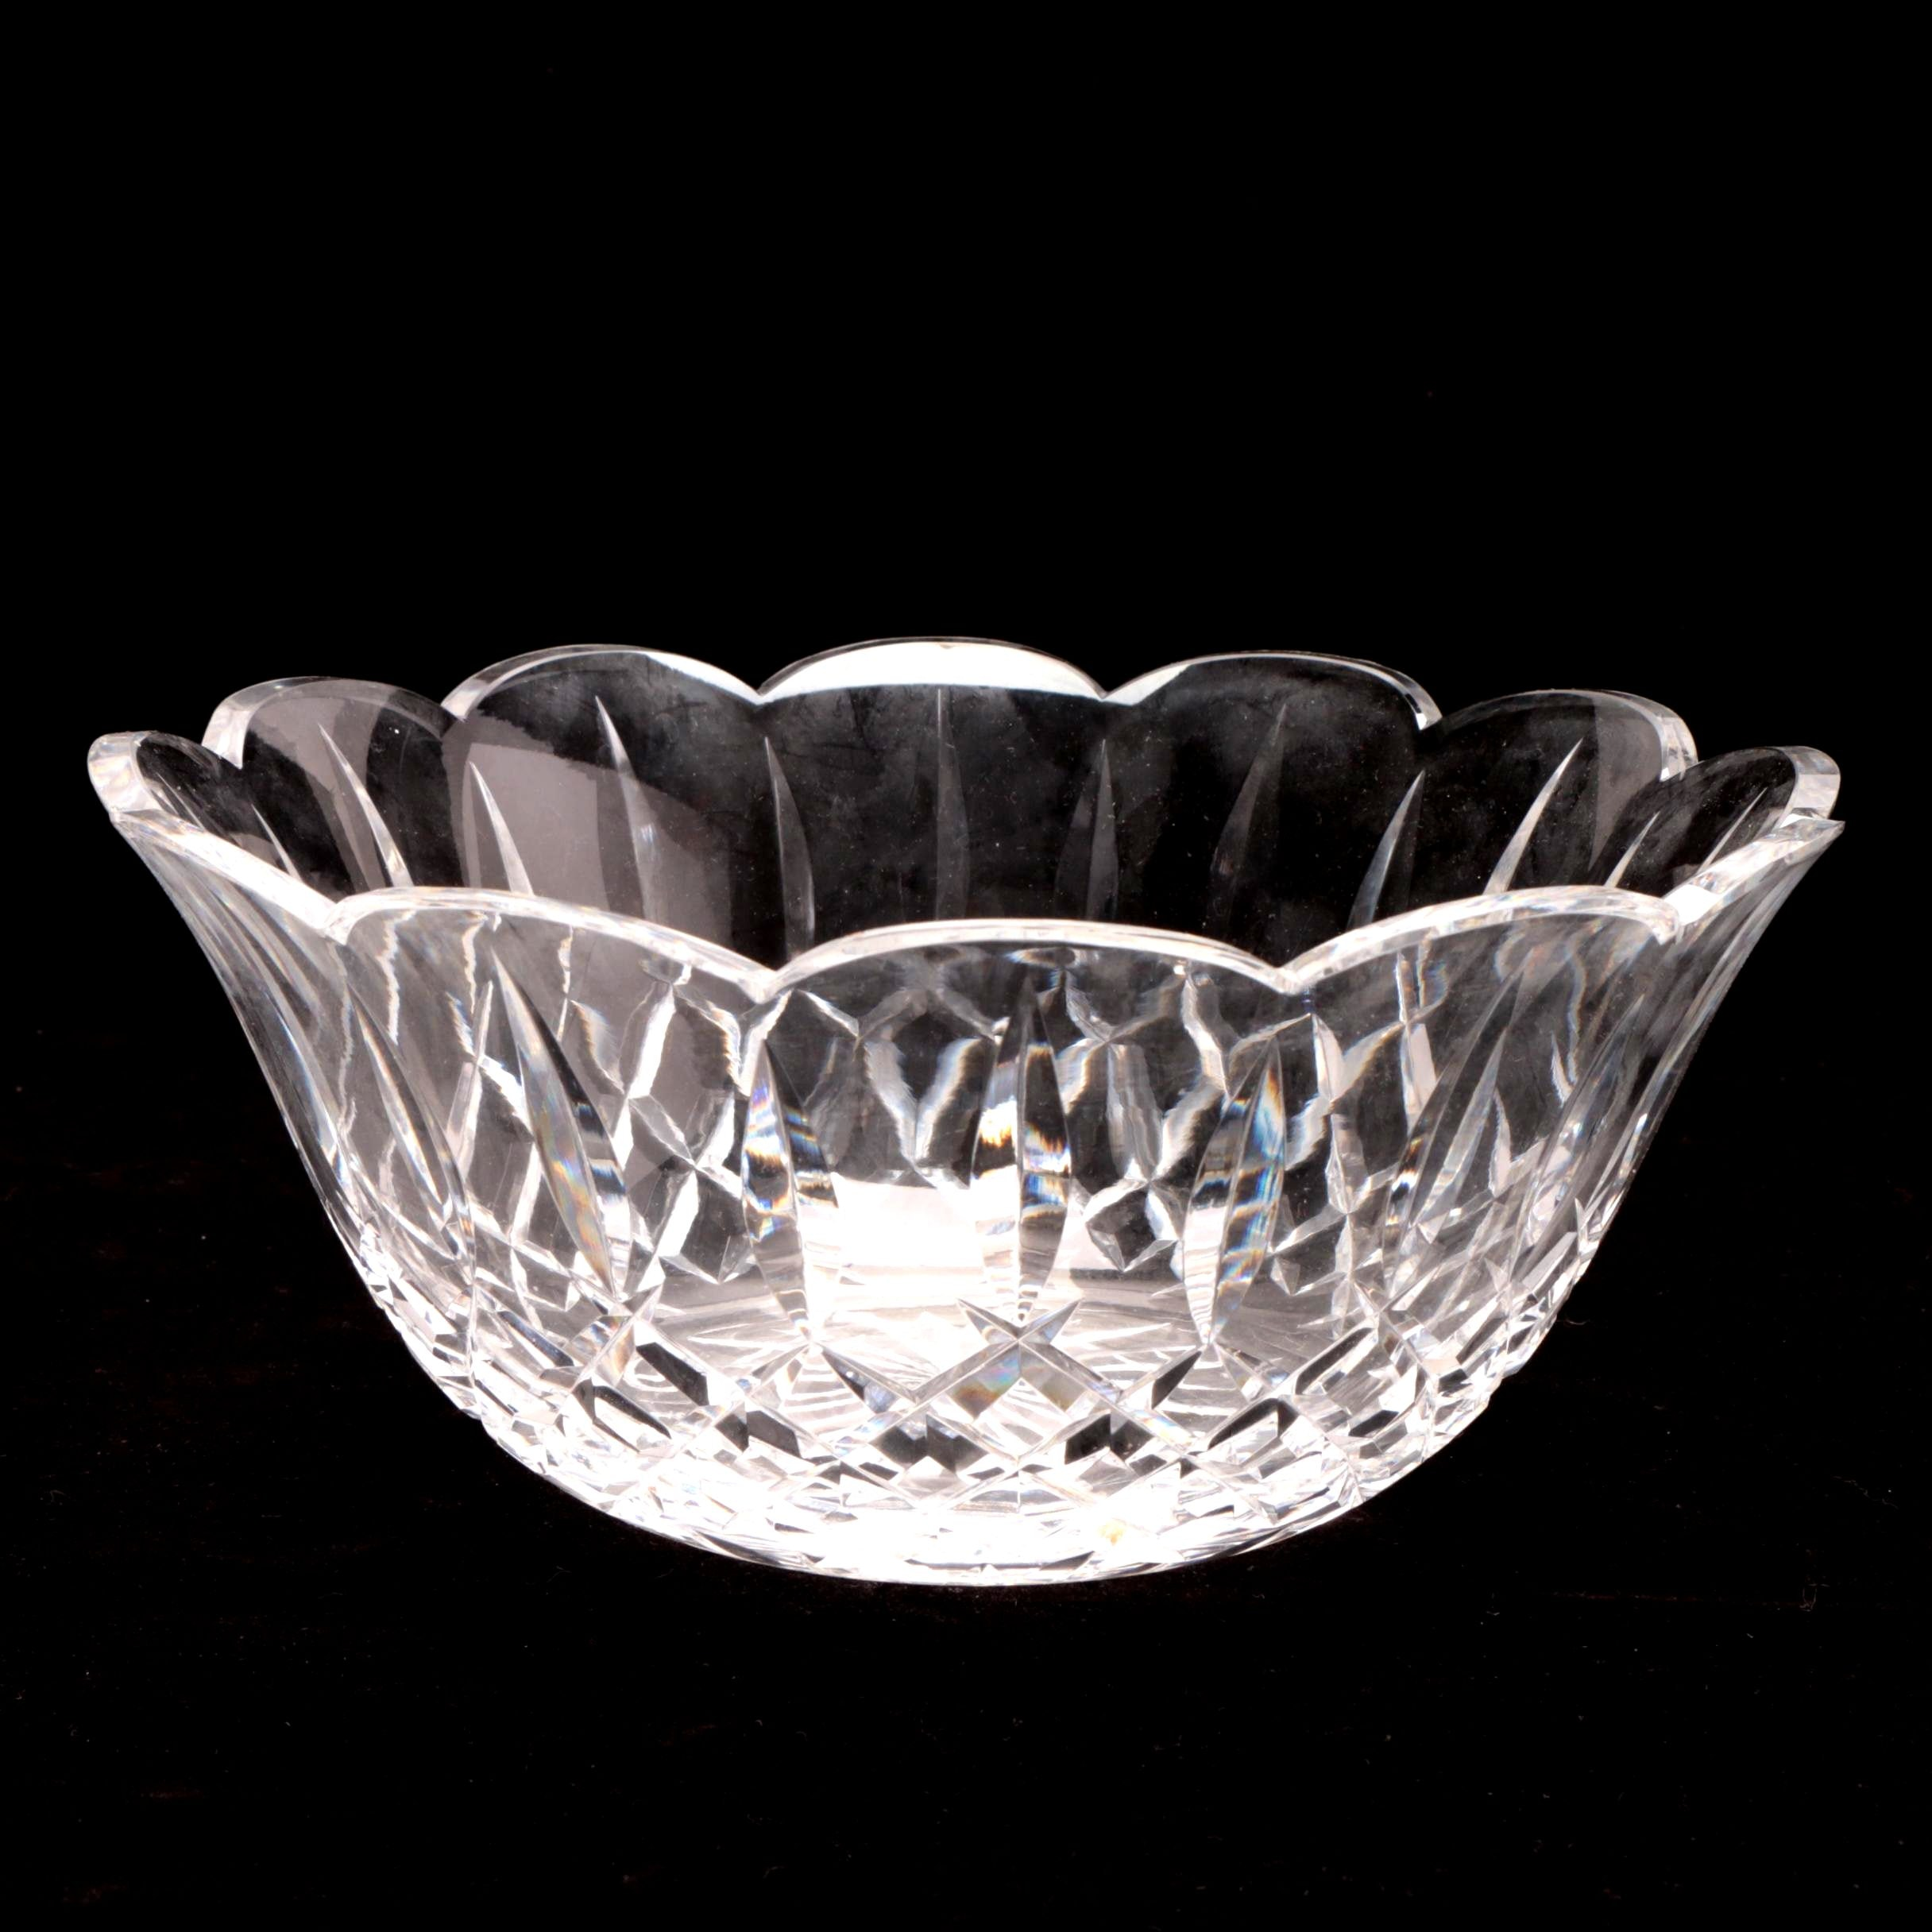 Waterford Crystal Scalloped Bowl